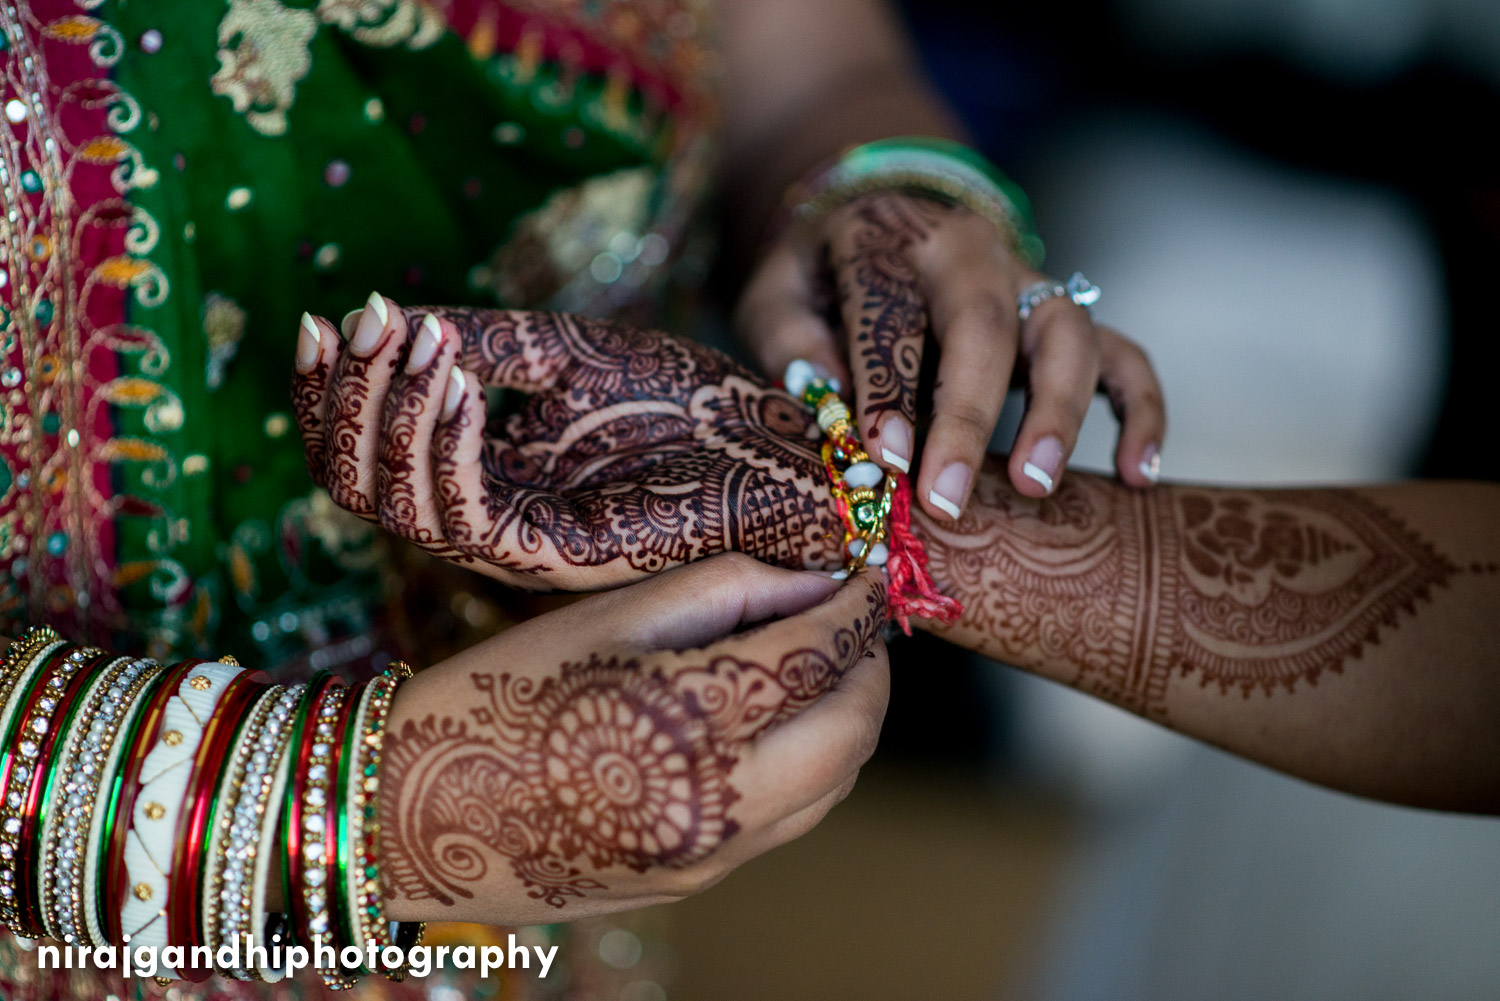 Arpita + Neel's Wedding-76.jpg